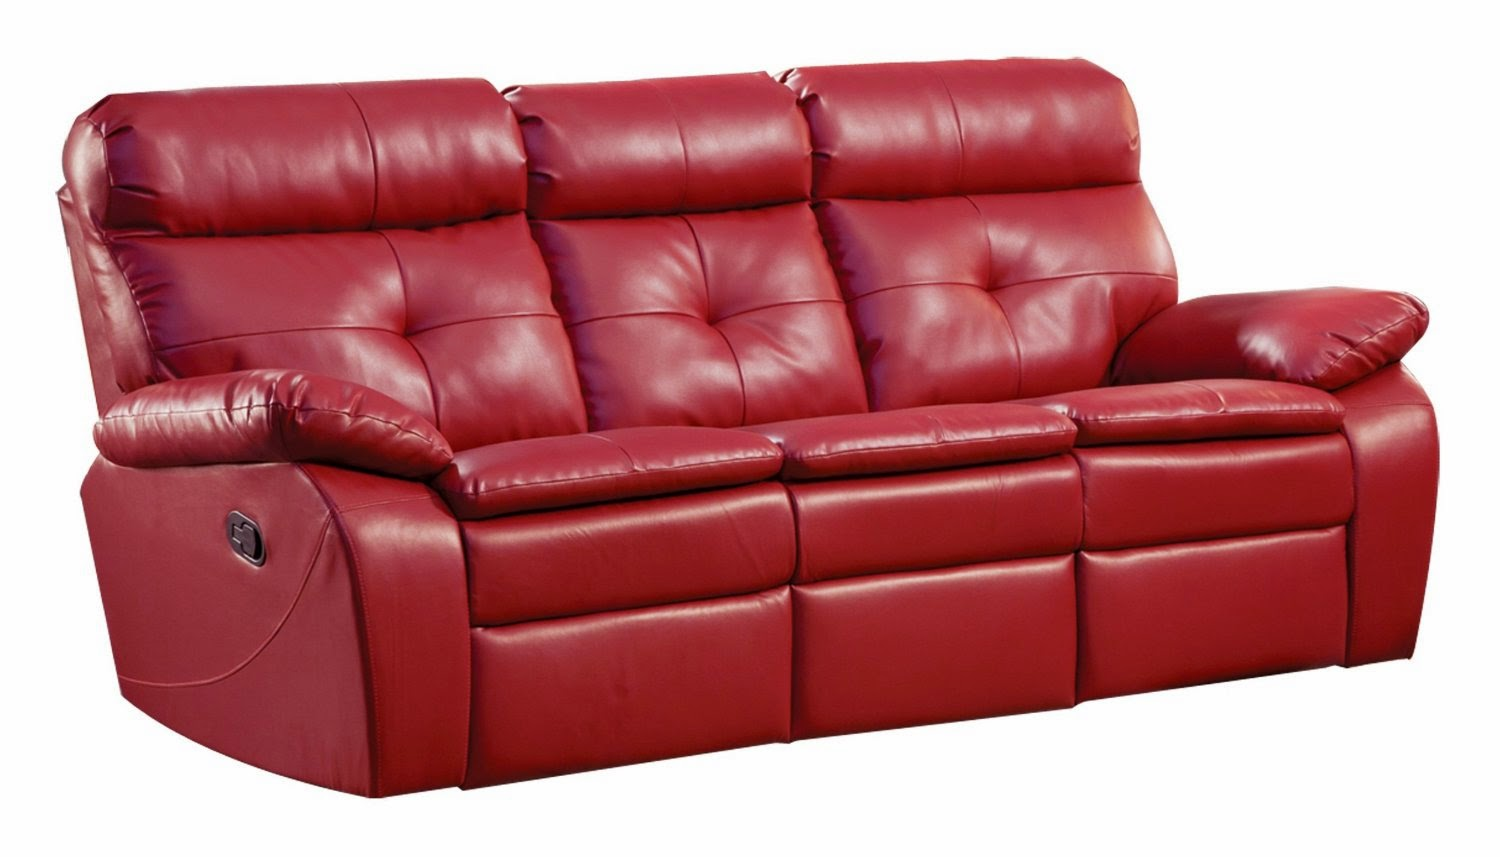 top seller reclining and recliner sofa loveseat red. Black Bedroom Furniture Sets. Home Design Ideas